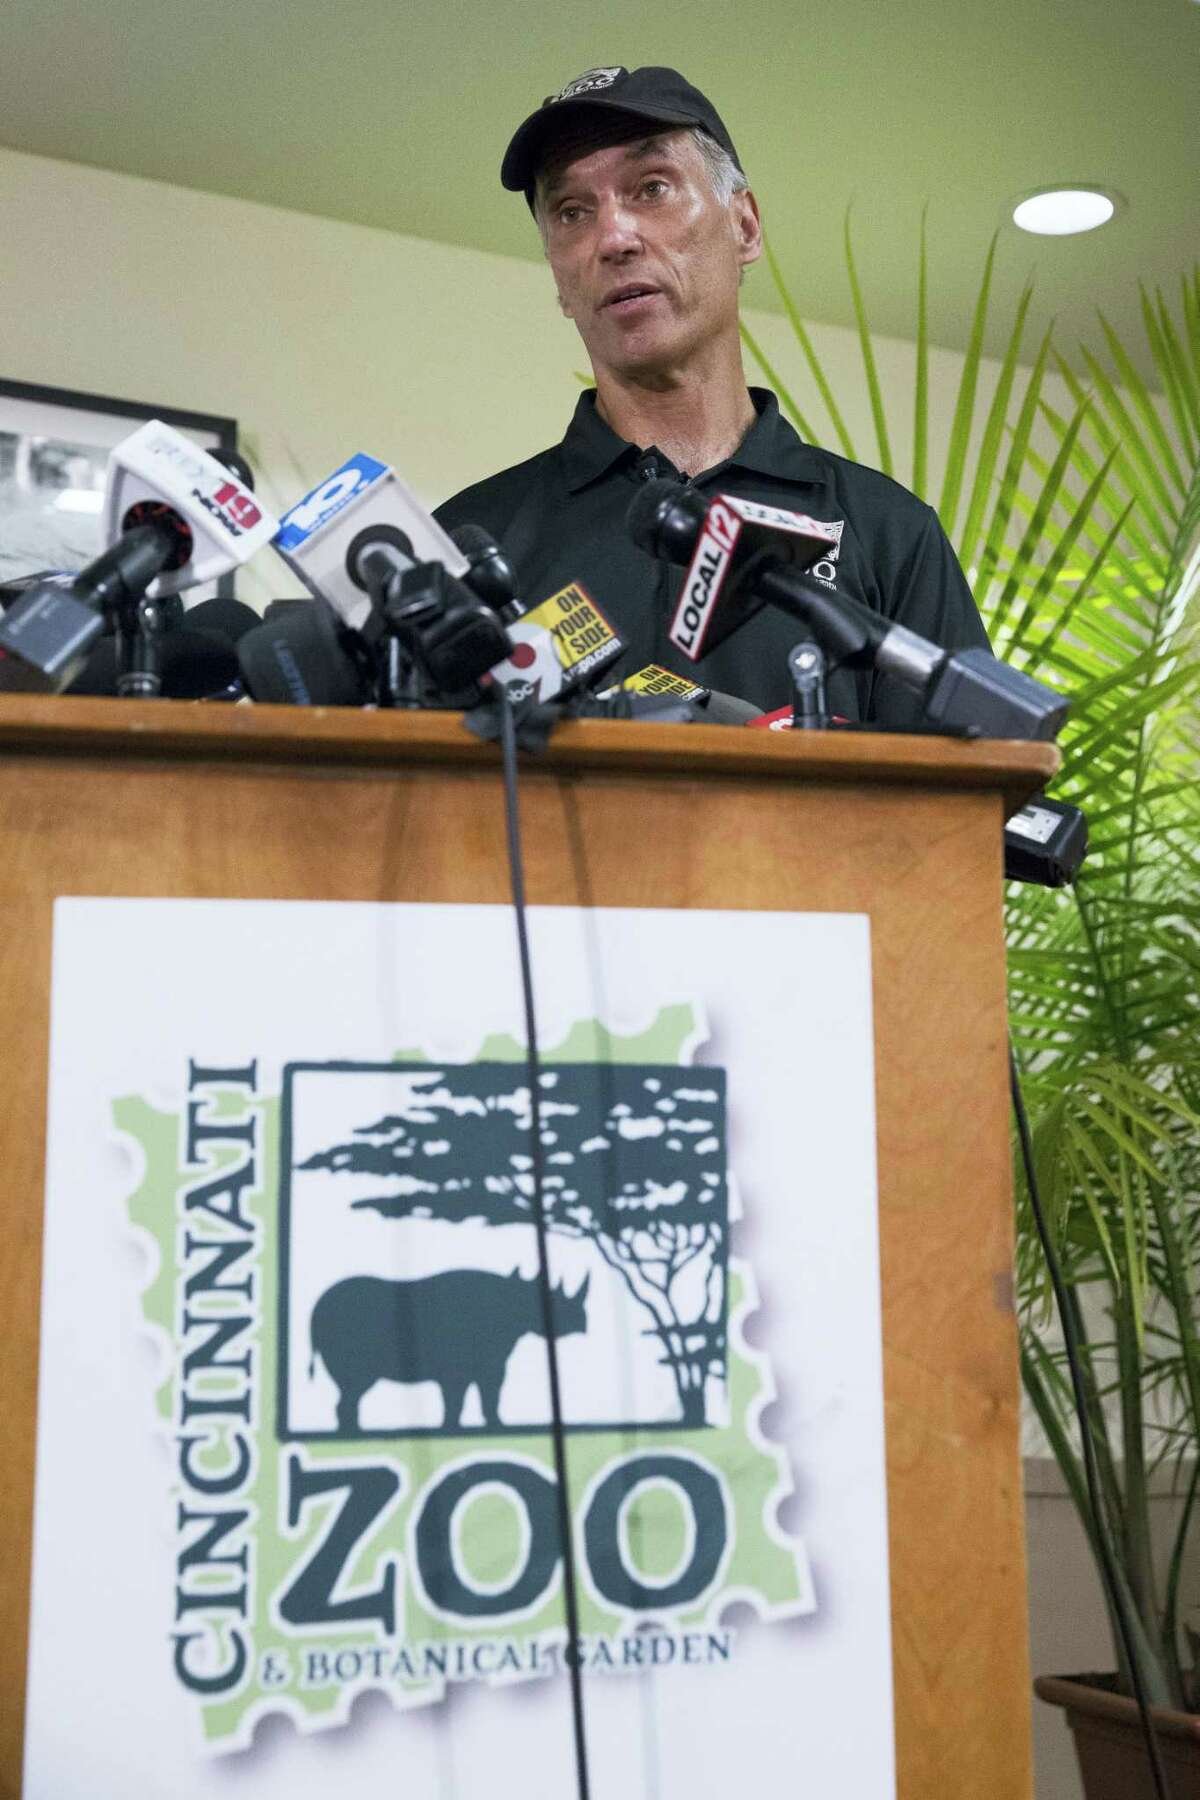 Thane Maynard, director of the Cincinnati Zoo & Botanical Garden, speaks during a news conference, Monday, May 30, 2016, in Cincinnati. A gorilla named Harambe was killed by a special zoo response team on Saturday after a 4-year-old boy slipped into an exhibit and it was concluded his life was in danger.